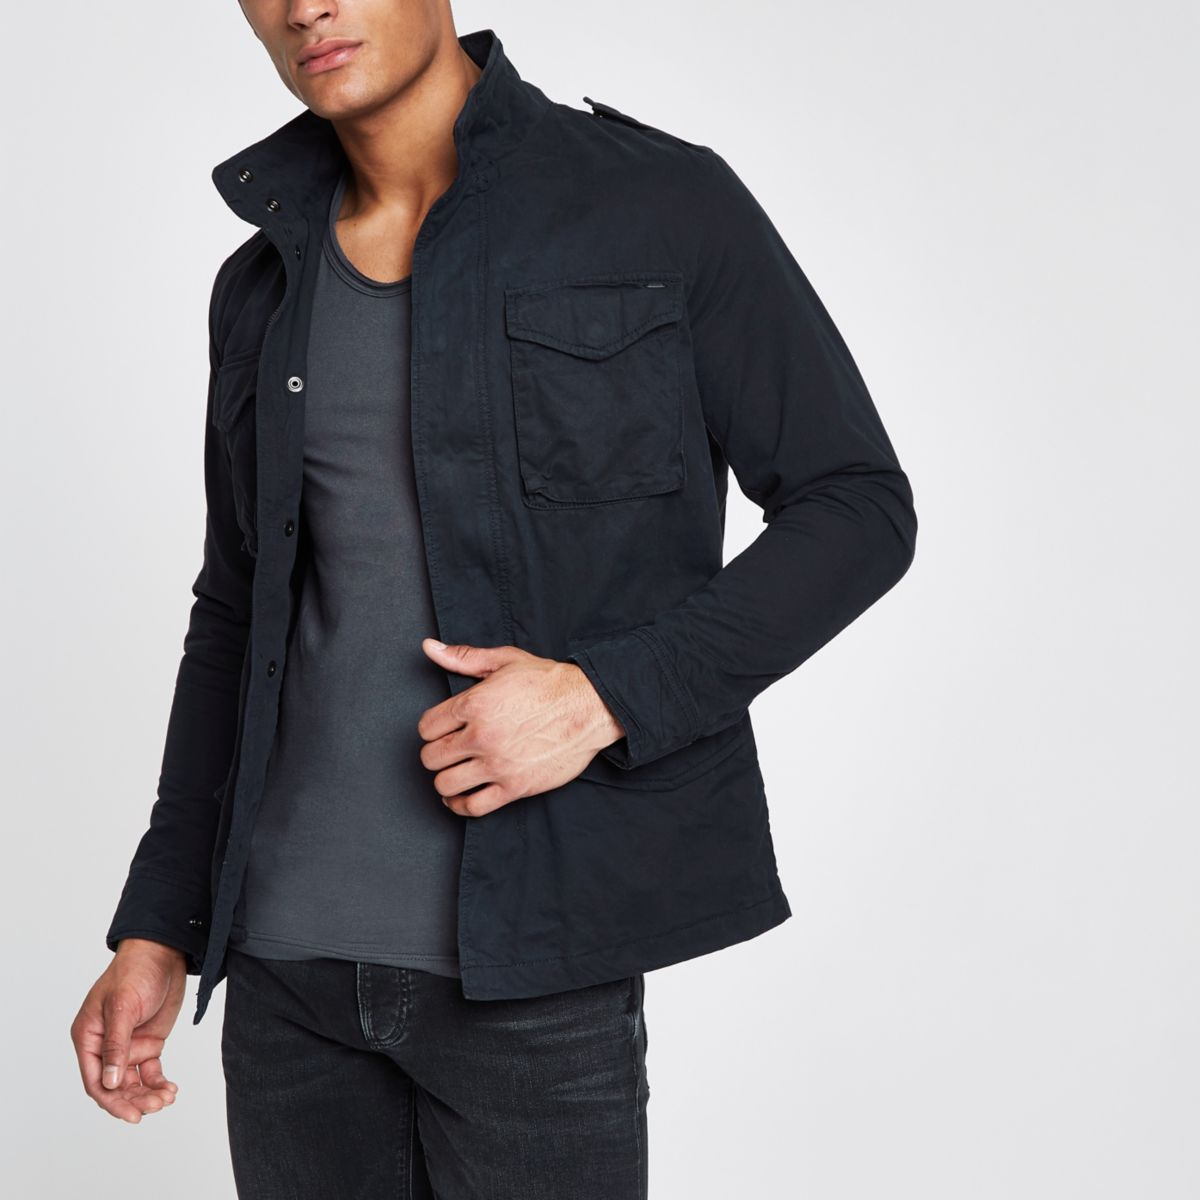 Jack & Jones Premium Oscar navy field jacket